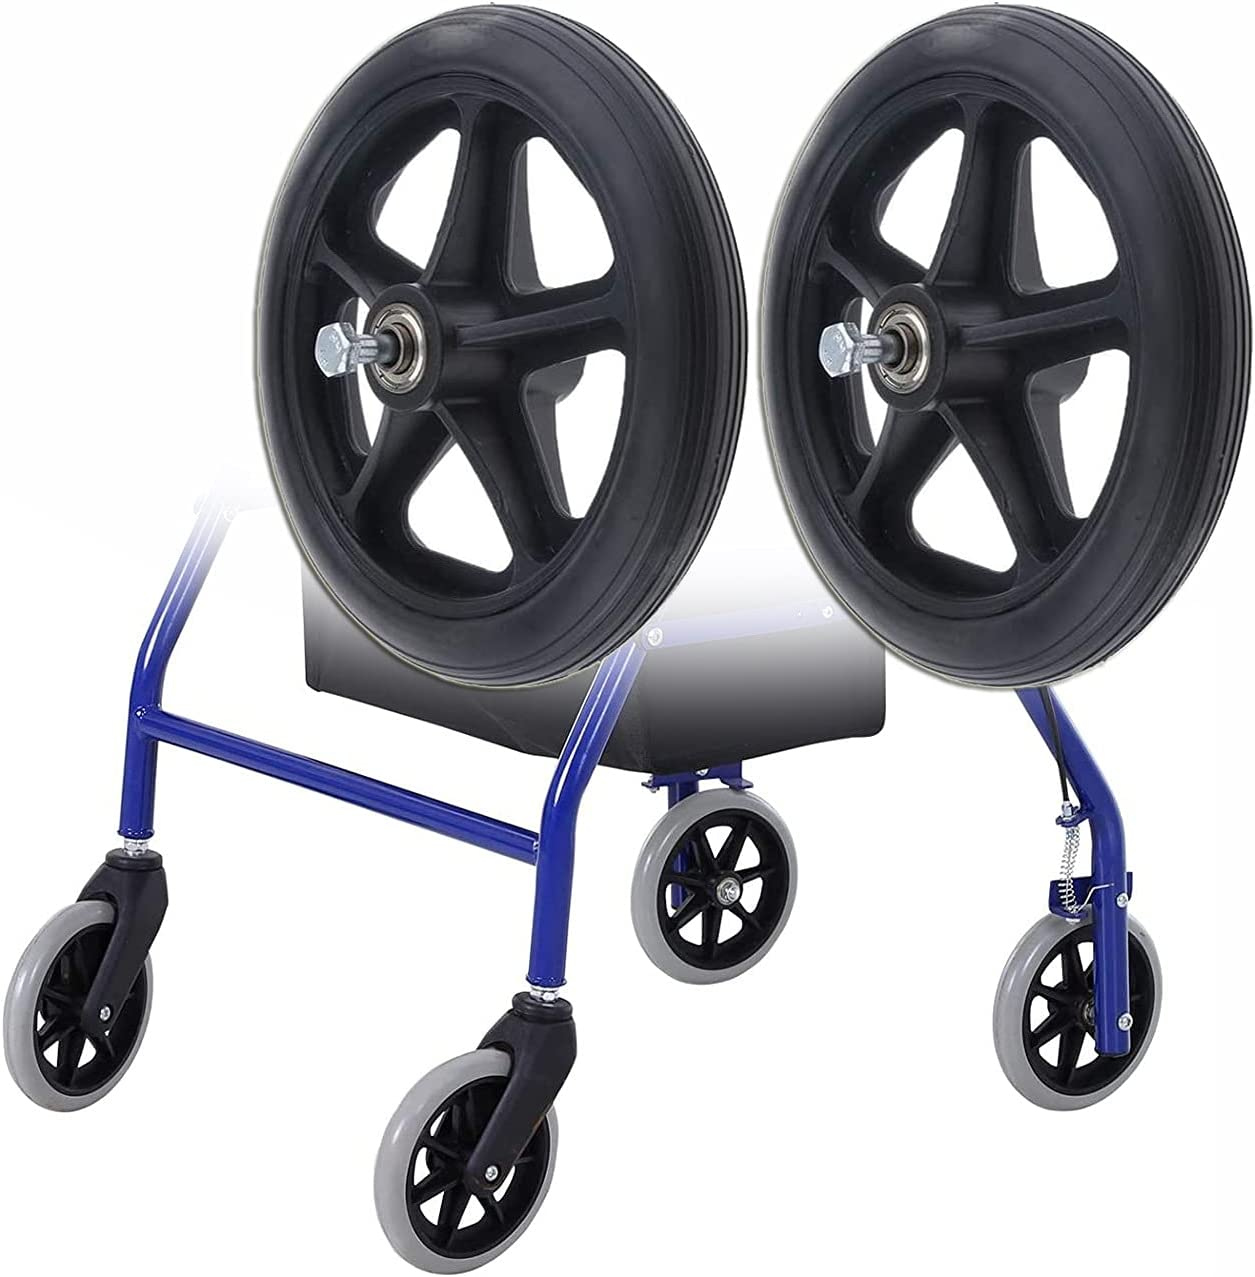 YFGYF Pack Colorado Springs Mall of 2 Solid Wheelchair Wheels Repl Accessories OFFicial store